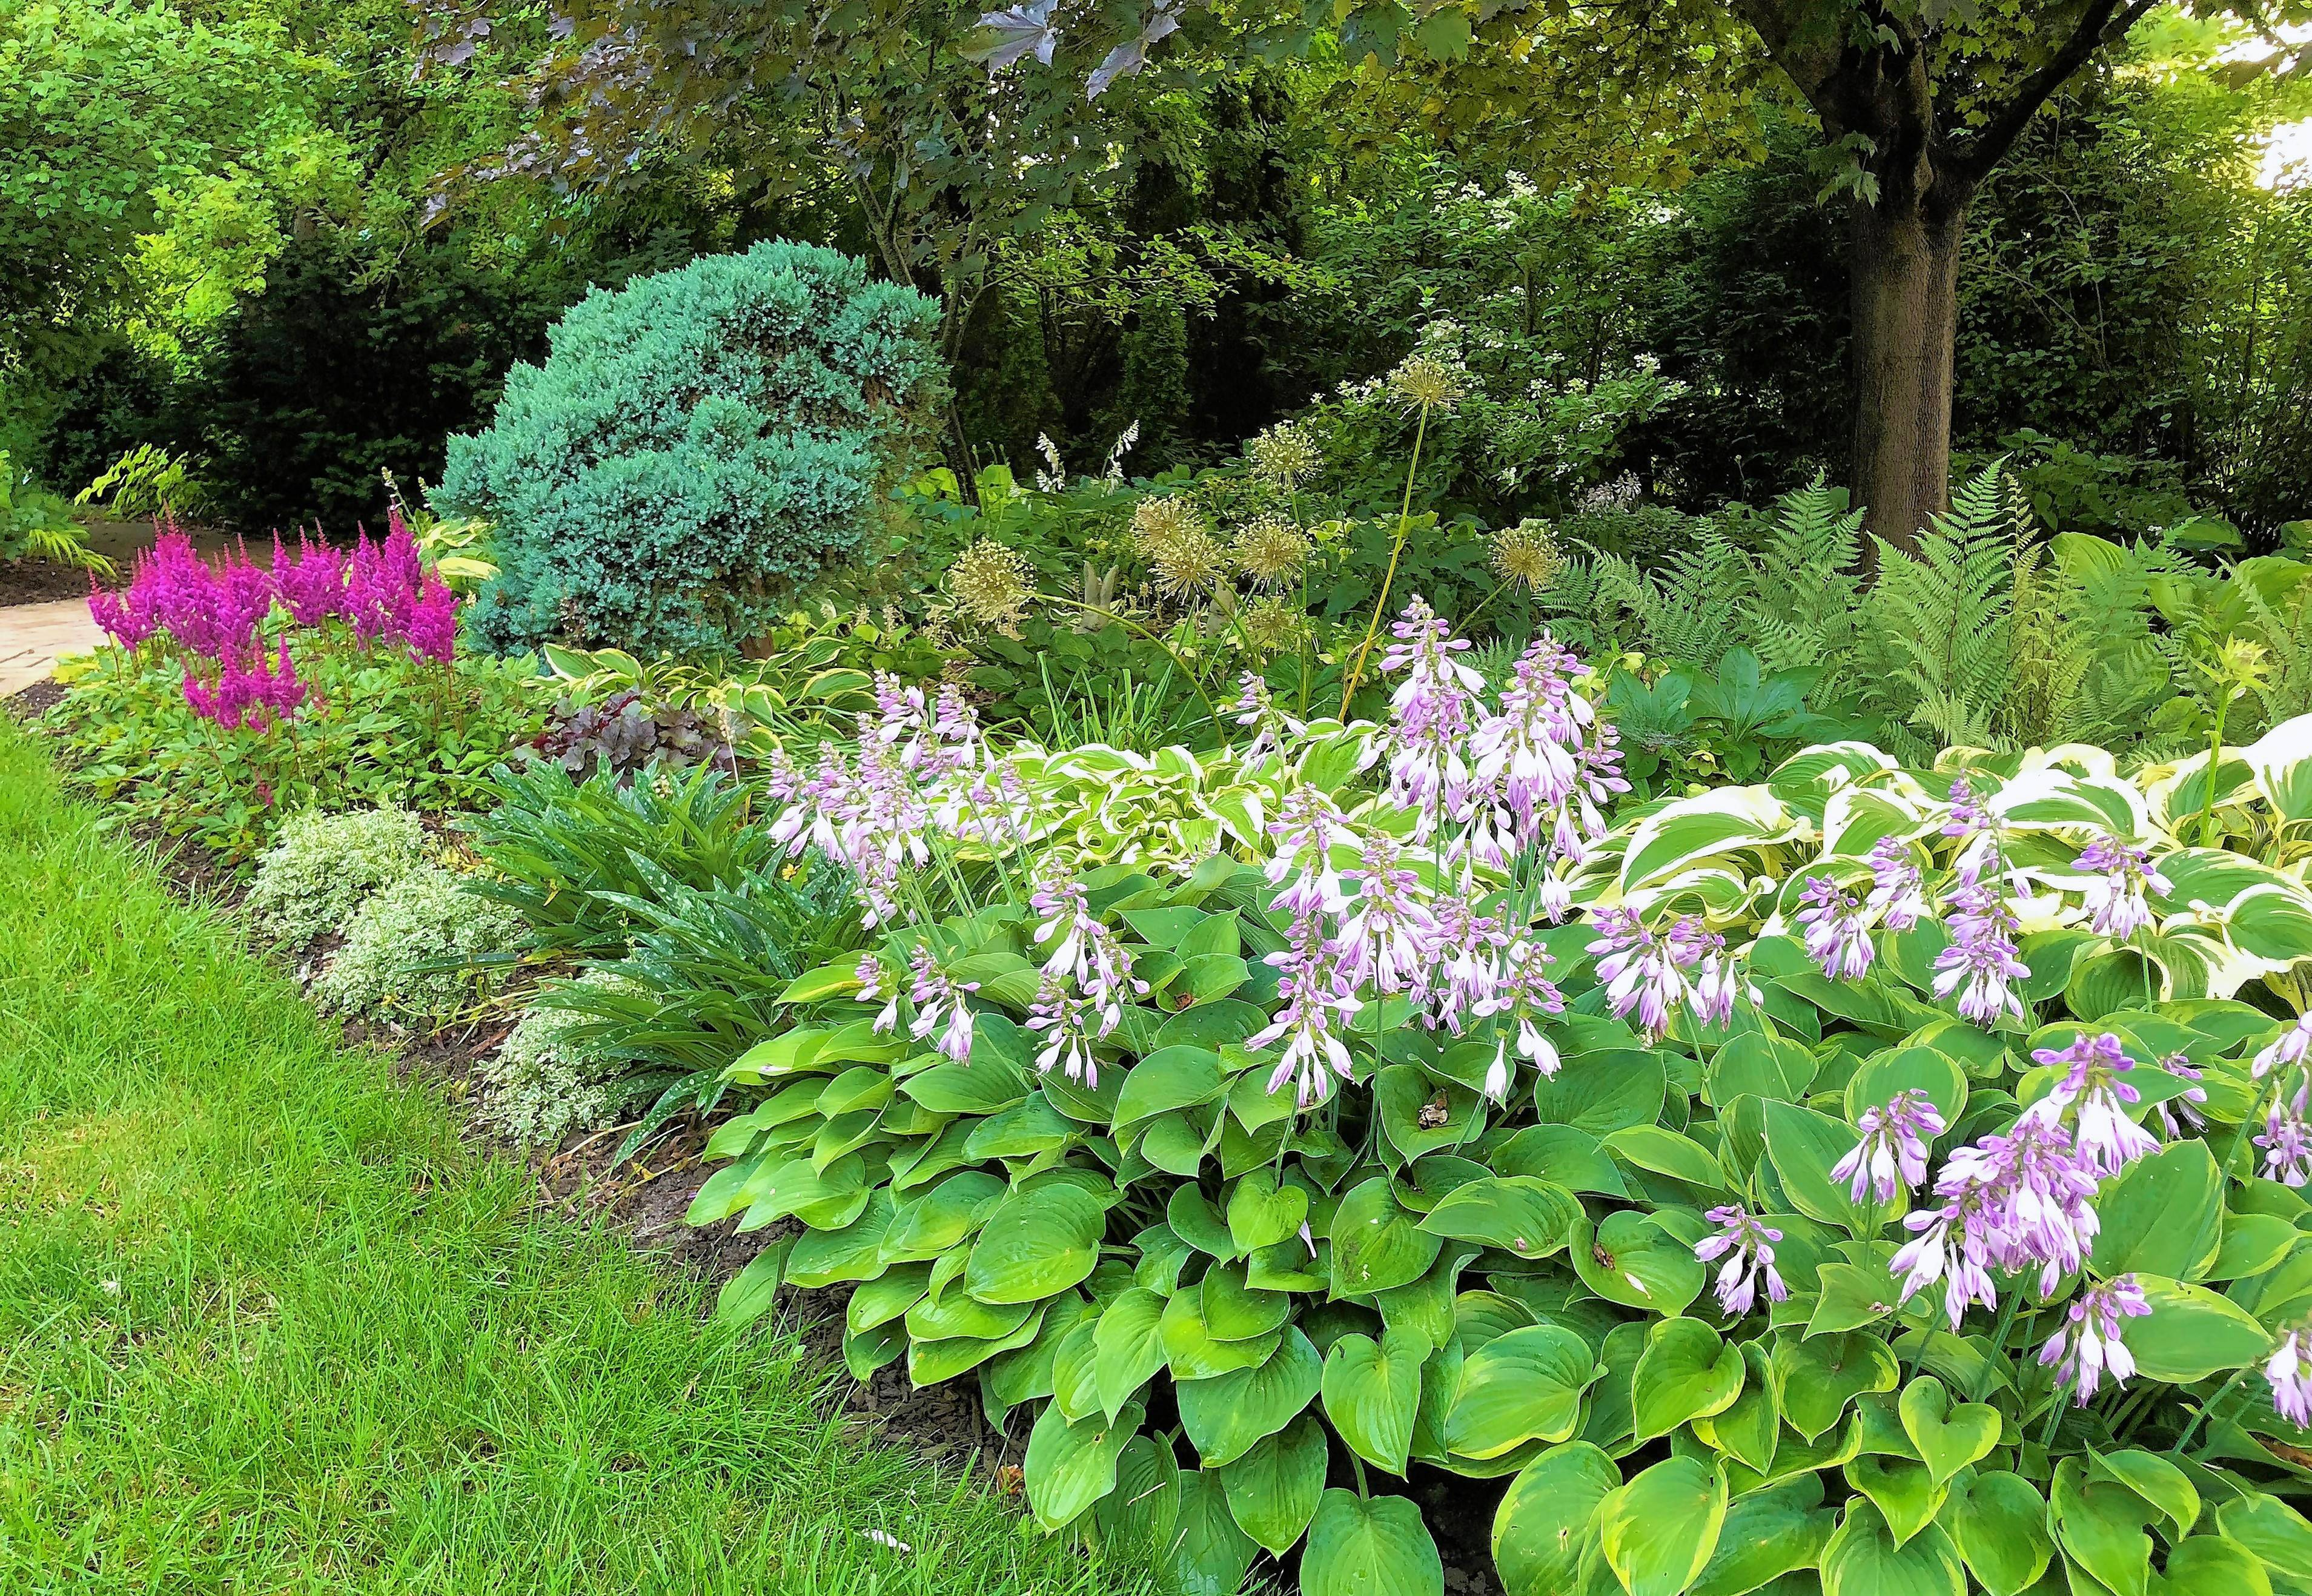 A wide variety of perennials grow under trees in one of the author's gardens.